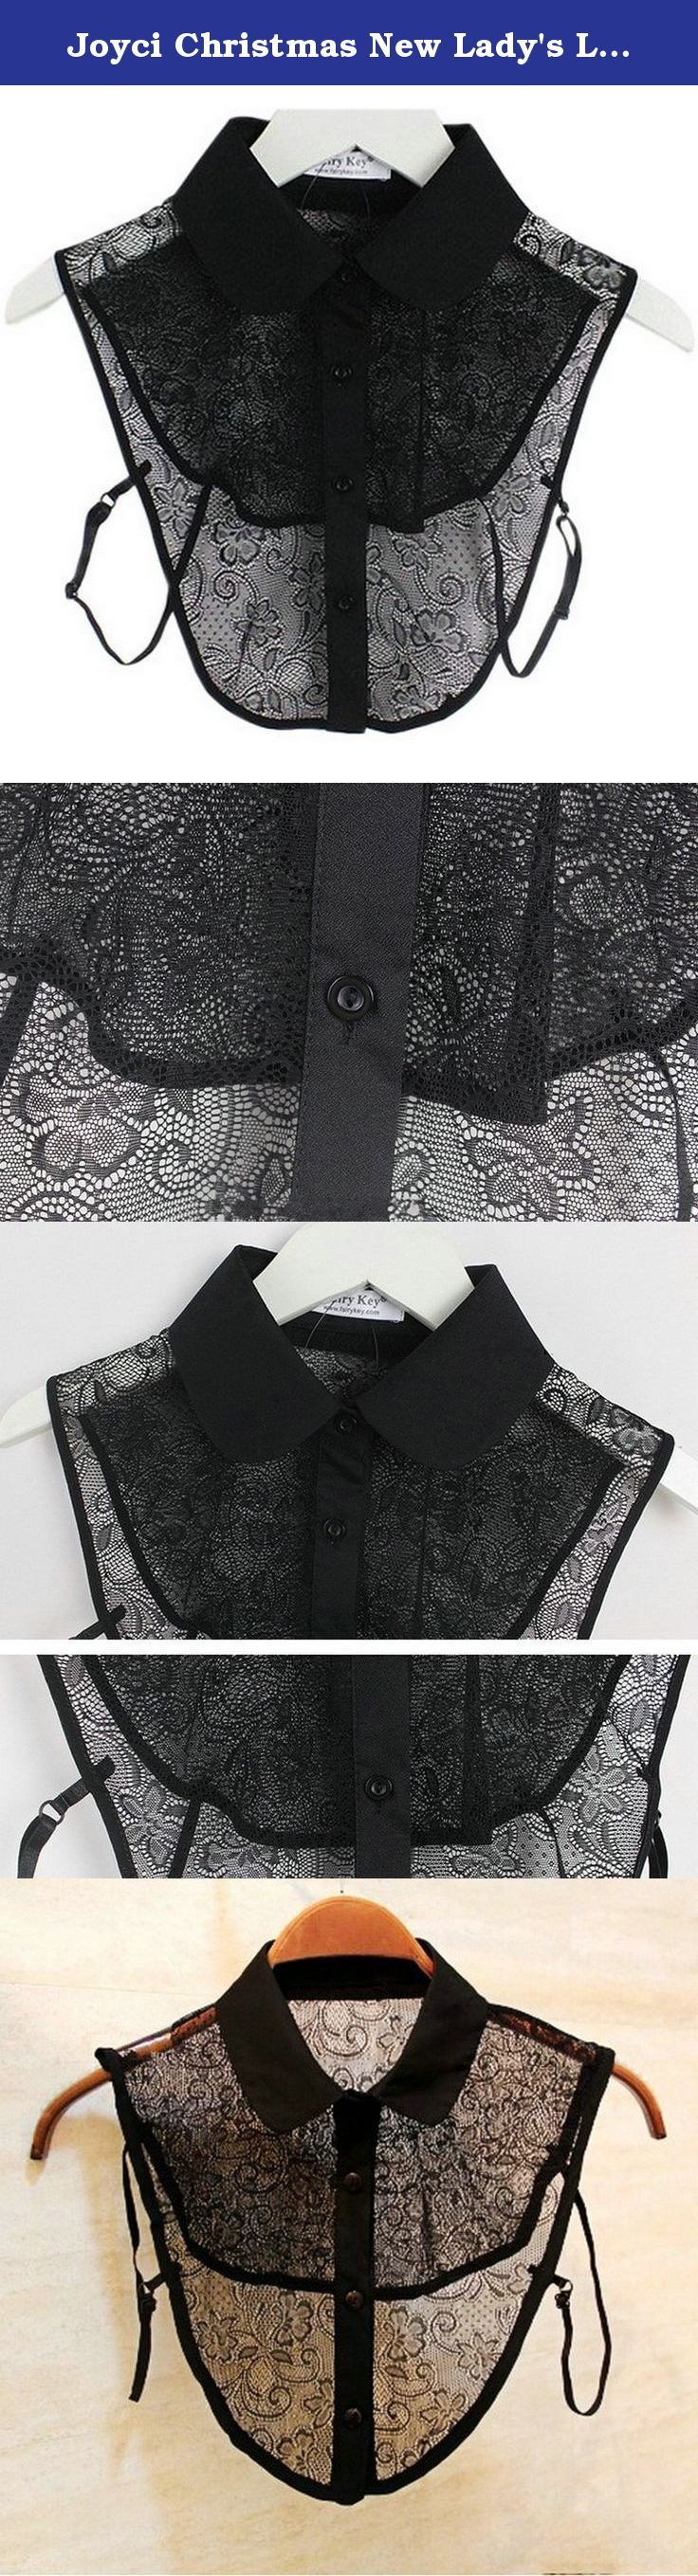 Joyci Christmas New Lady's Lace Hollow Out Half Shirt False Collar Fake (Black). So charming and unique: Elegant fashion lace hollow out fake collar .Easy to wear,realistic collar as if it's a real part of your clothes. Delicate and charming it can decorate your featureless clothing. Perfectly paired under sweaters, jackets, polo shirts, dresses, T-shirts and more. Create endless wardrobe options with the dickey shirtless collar. They provide the illusion of wearing a button down without…